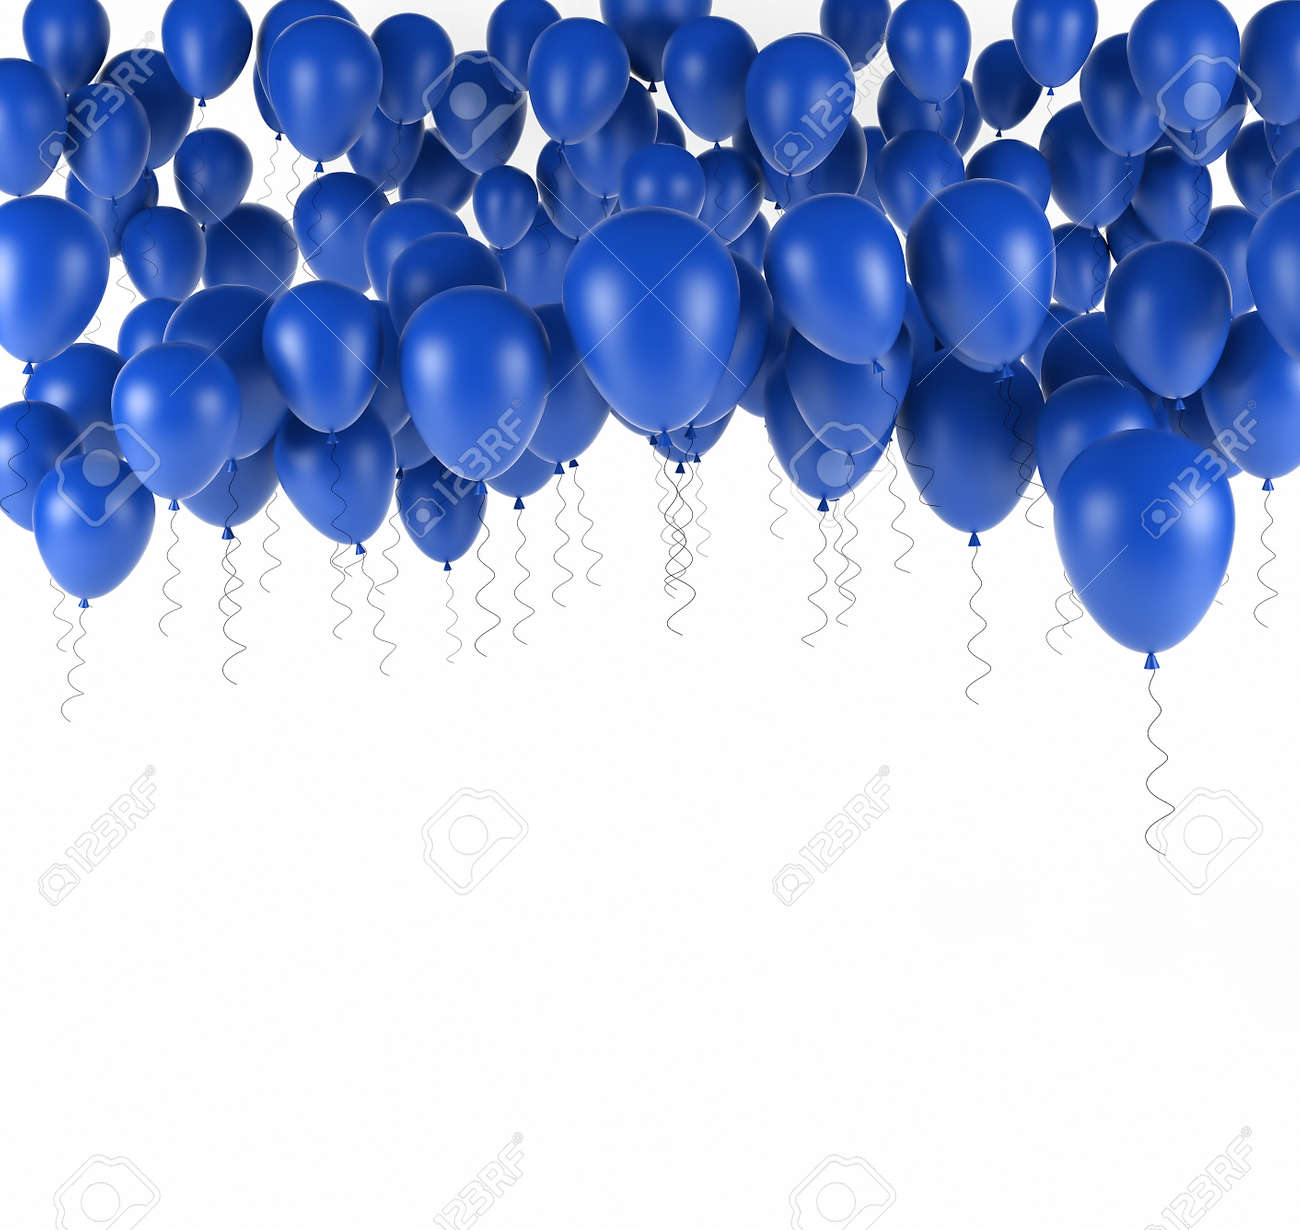 Blue Bunch Of Birthday Balloons Isolated In White 3d Render Stock Photo